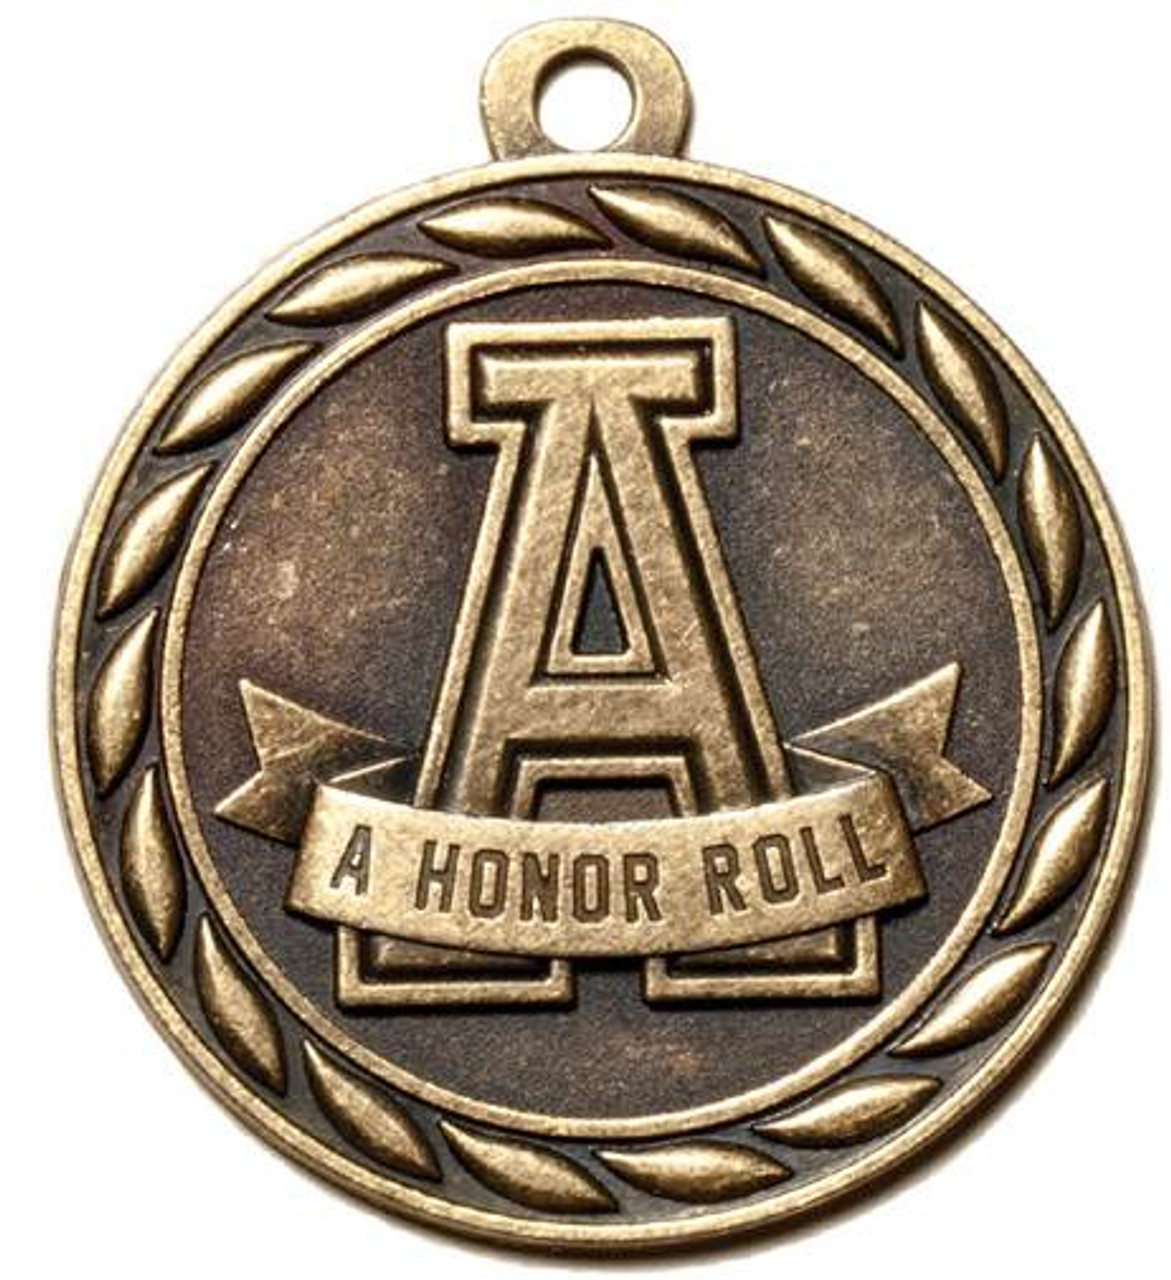 A Honor Roll Medal